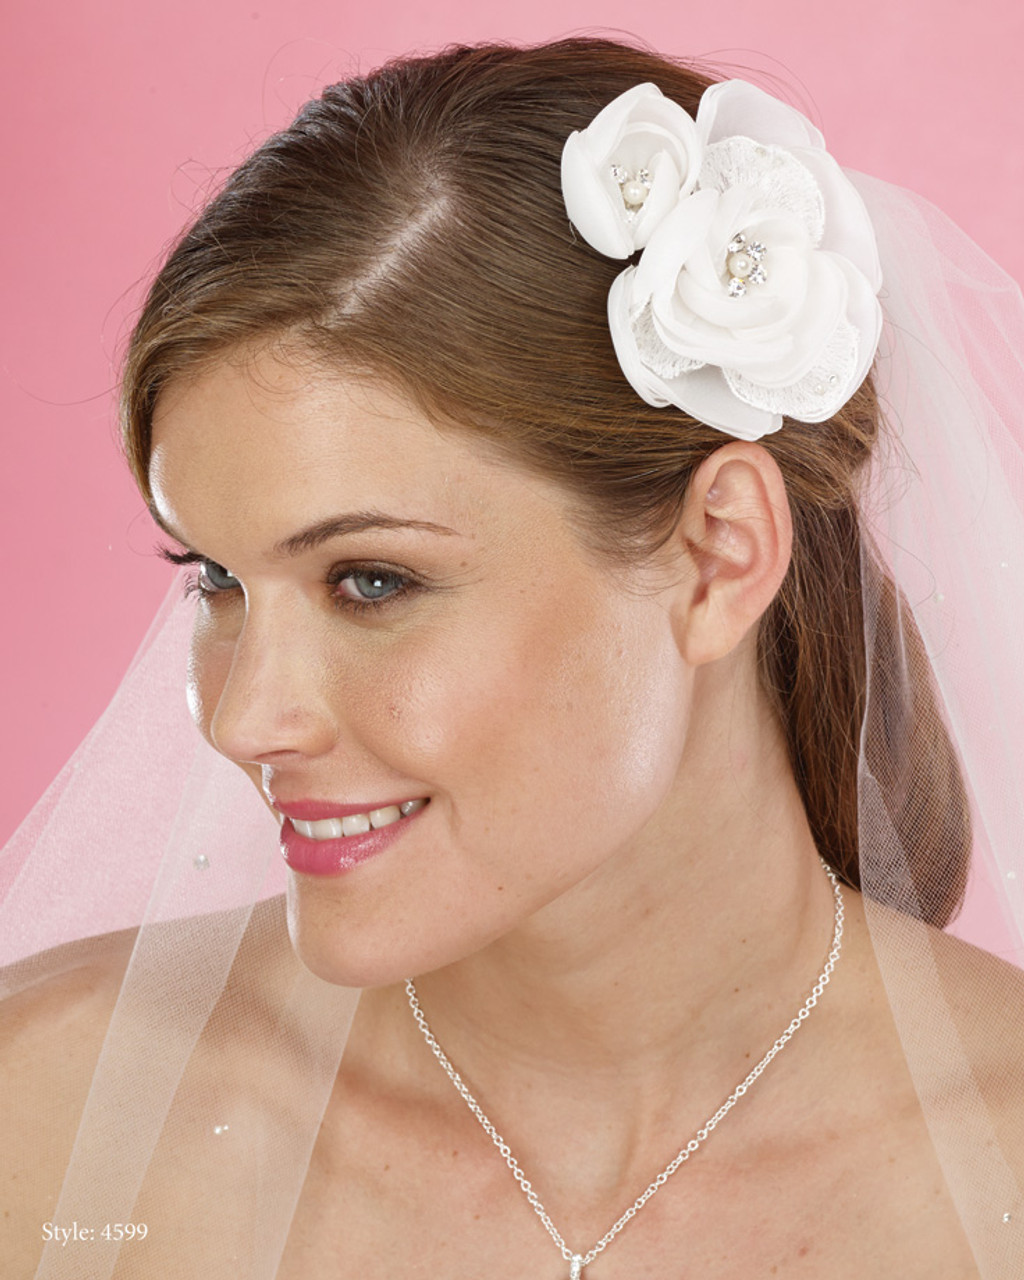 Le Crystal Collection - Marionat Bridal Headpieces 4599 - Quick Ship